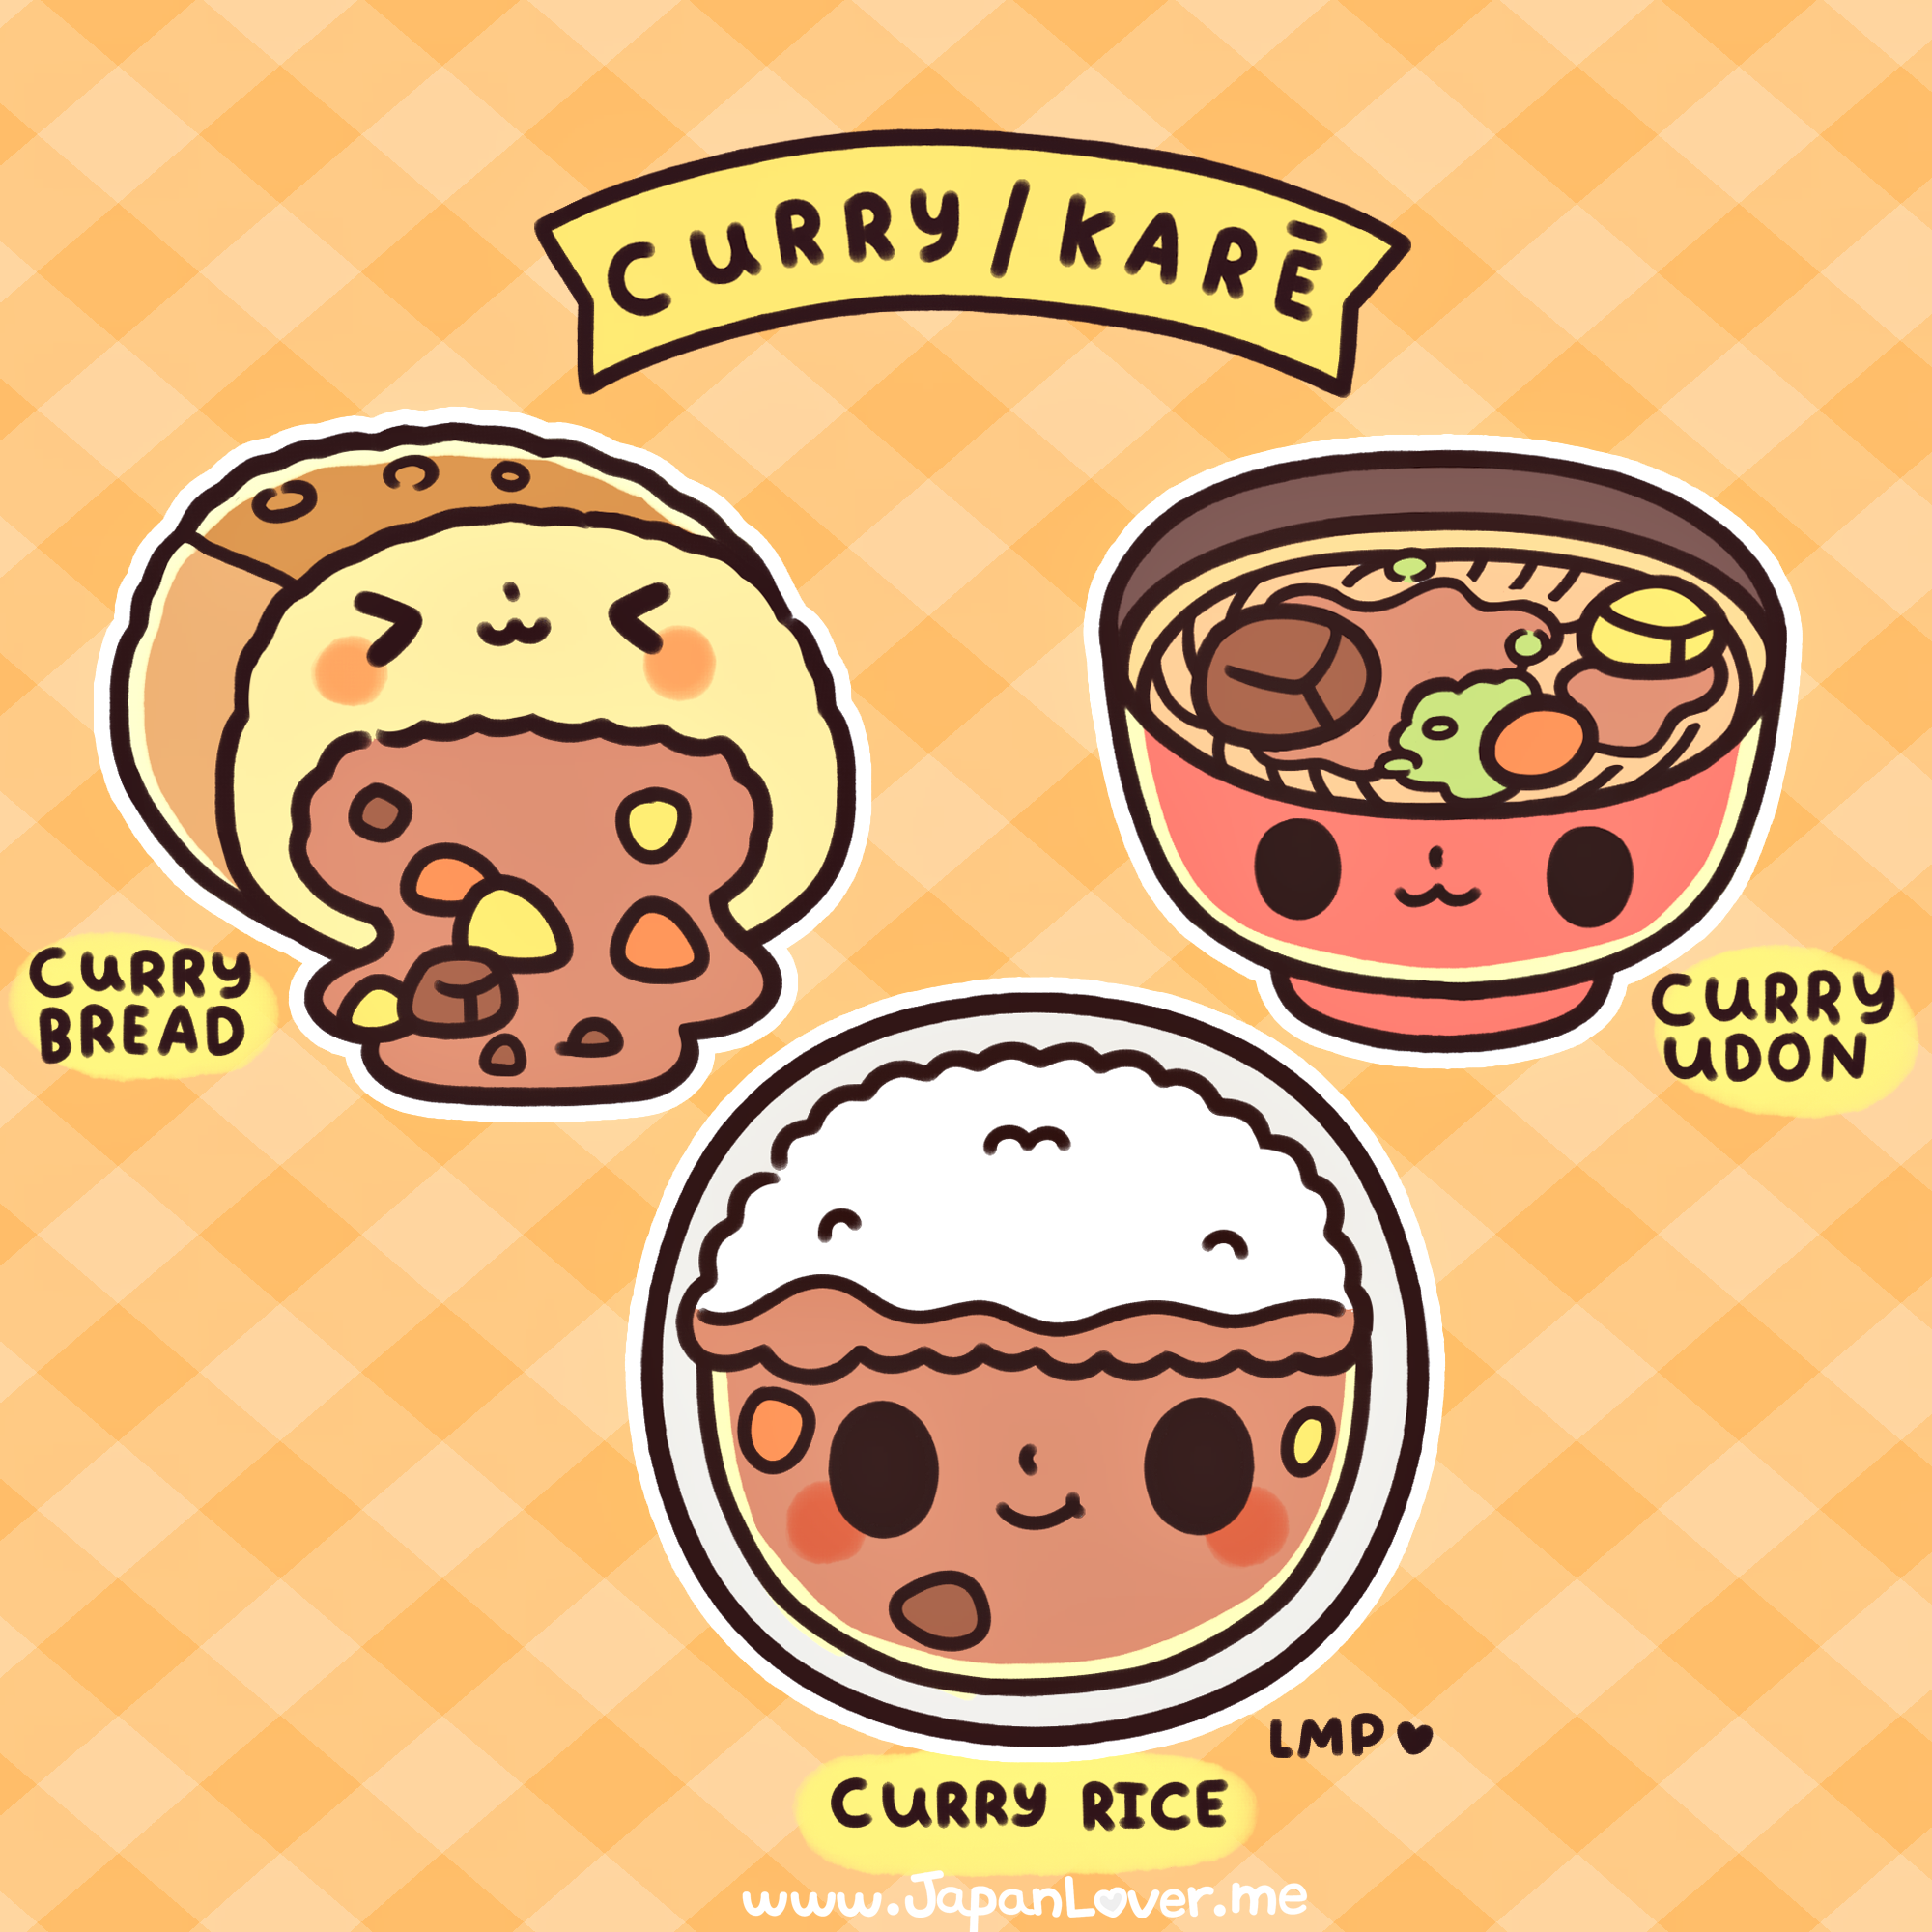 """Are you as curry-azy for curry like we are? ヽ(°▽、°)ノ   Of course, we all know curry didn't originate from Japan~ It was brought to Japan by the British, (when India was still under their administration). It became so popular in the Japanese households because of its convenient preparation and storage, that it is considered a """"national dish""""! ヽ(' ∇' )ノ  Which form of curry serving do like like most: curry rice, curry bread, or curry udon (or any kind of noodles)?  www.japanlover.me"""